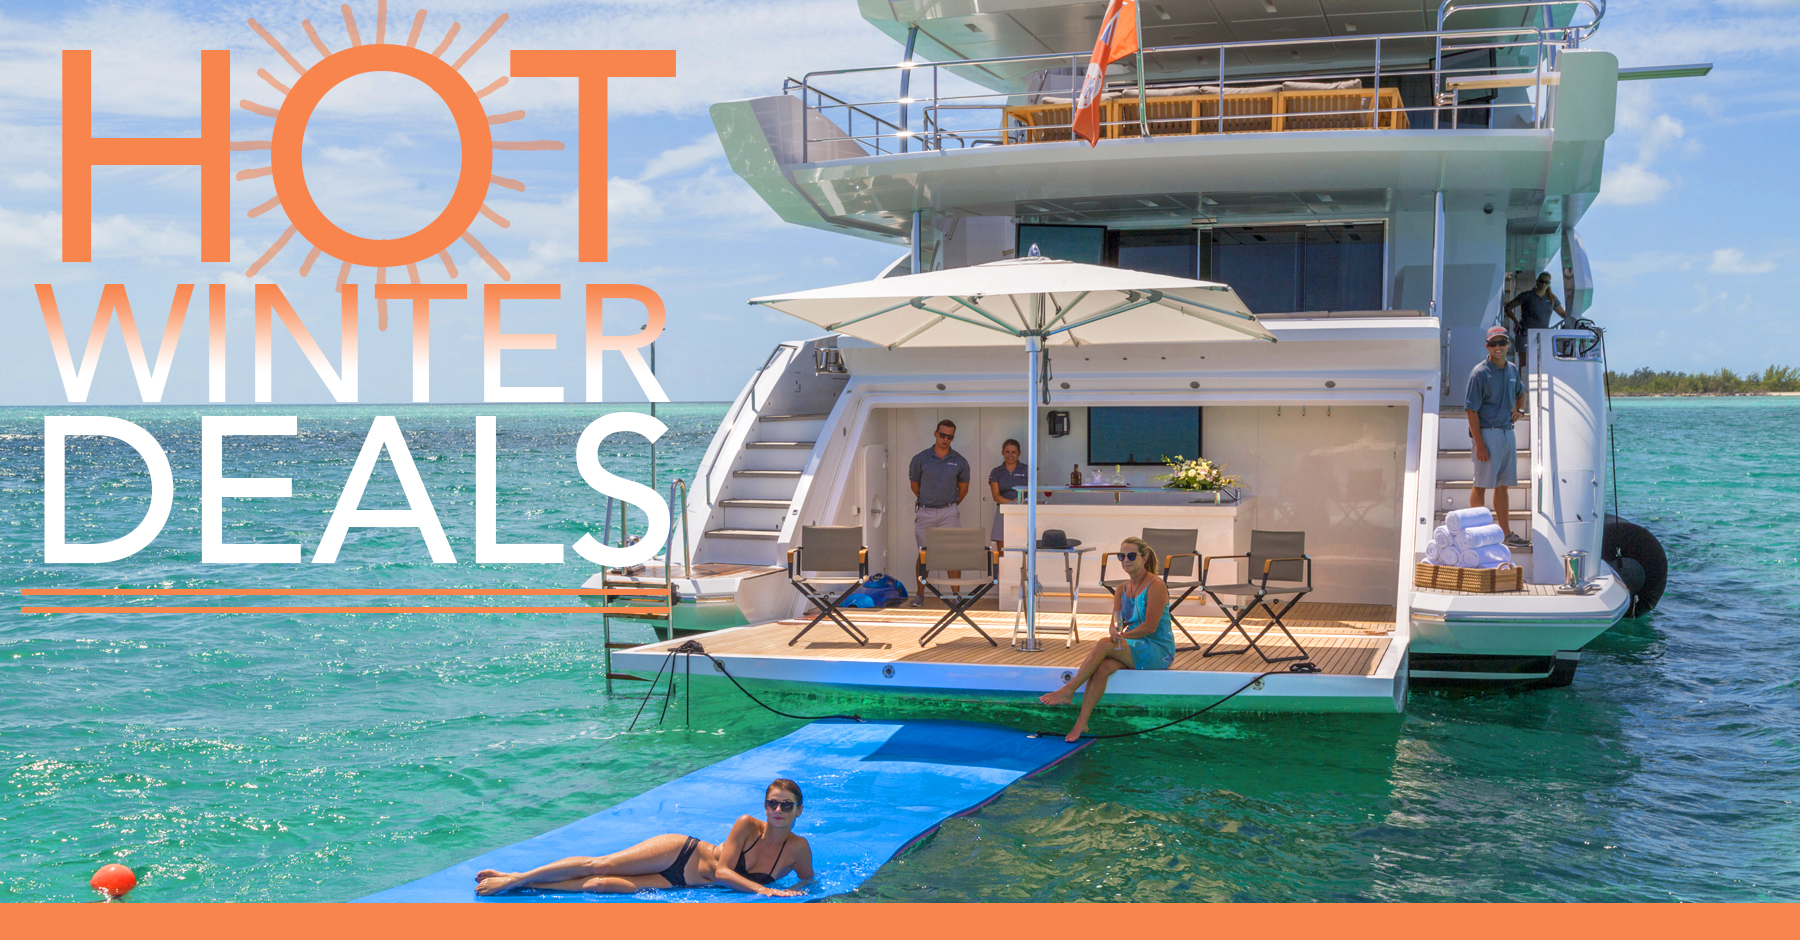 Hot Yacht Charter Deals for February